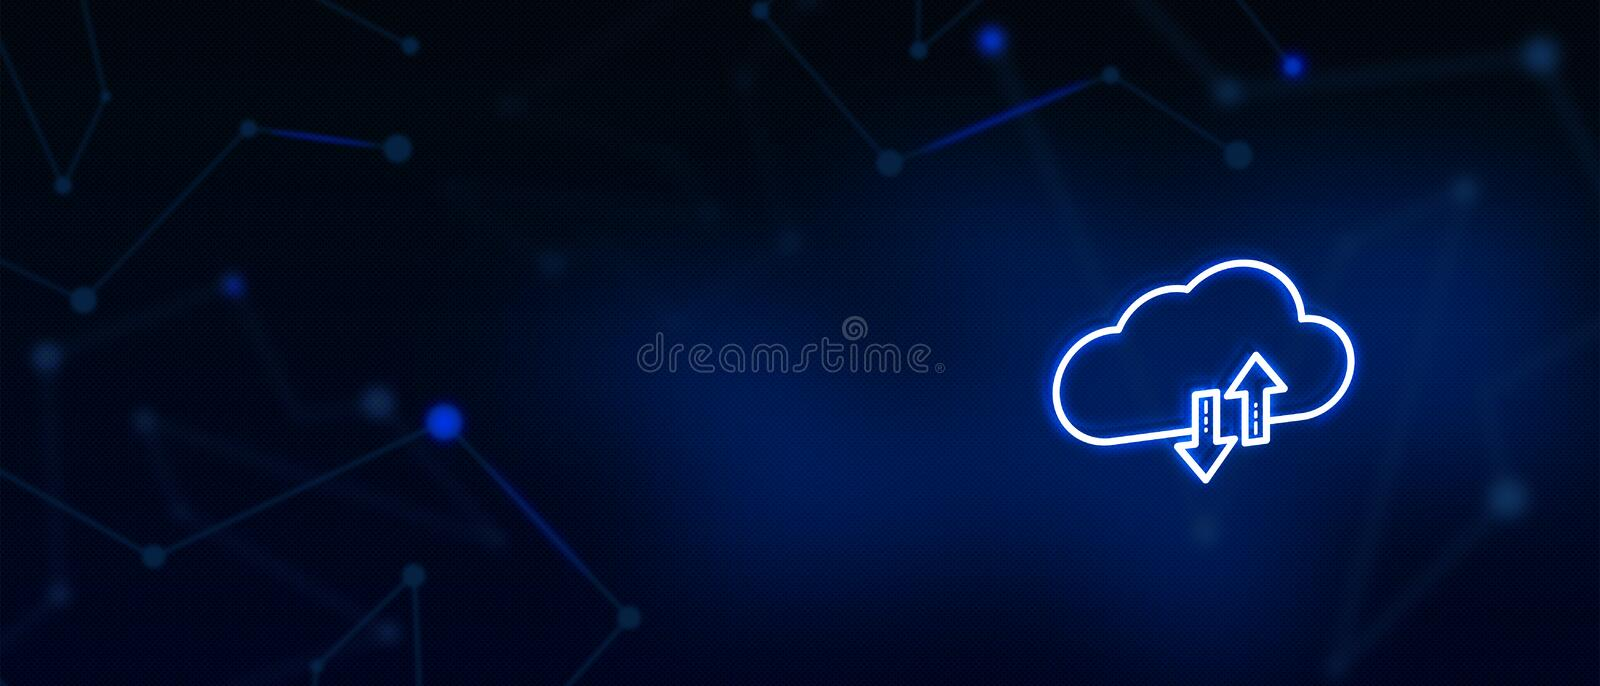 Cloud server, Cloud sync, Cloud services, Digital technology, Contact us, Landing page background cover page. Cloud sync, Cloud services, Digital technology vector illustration